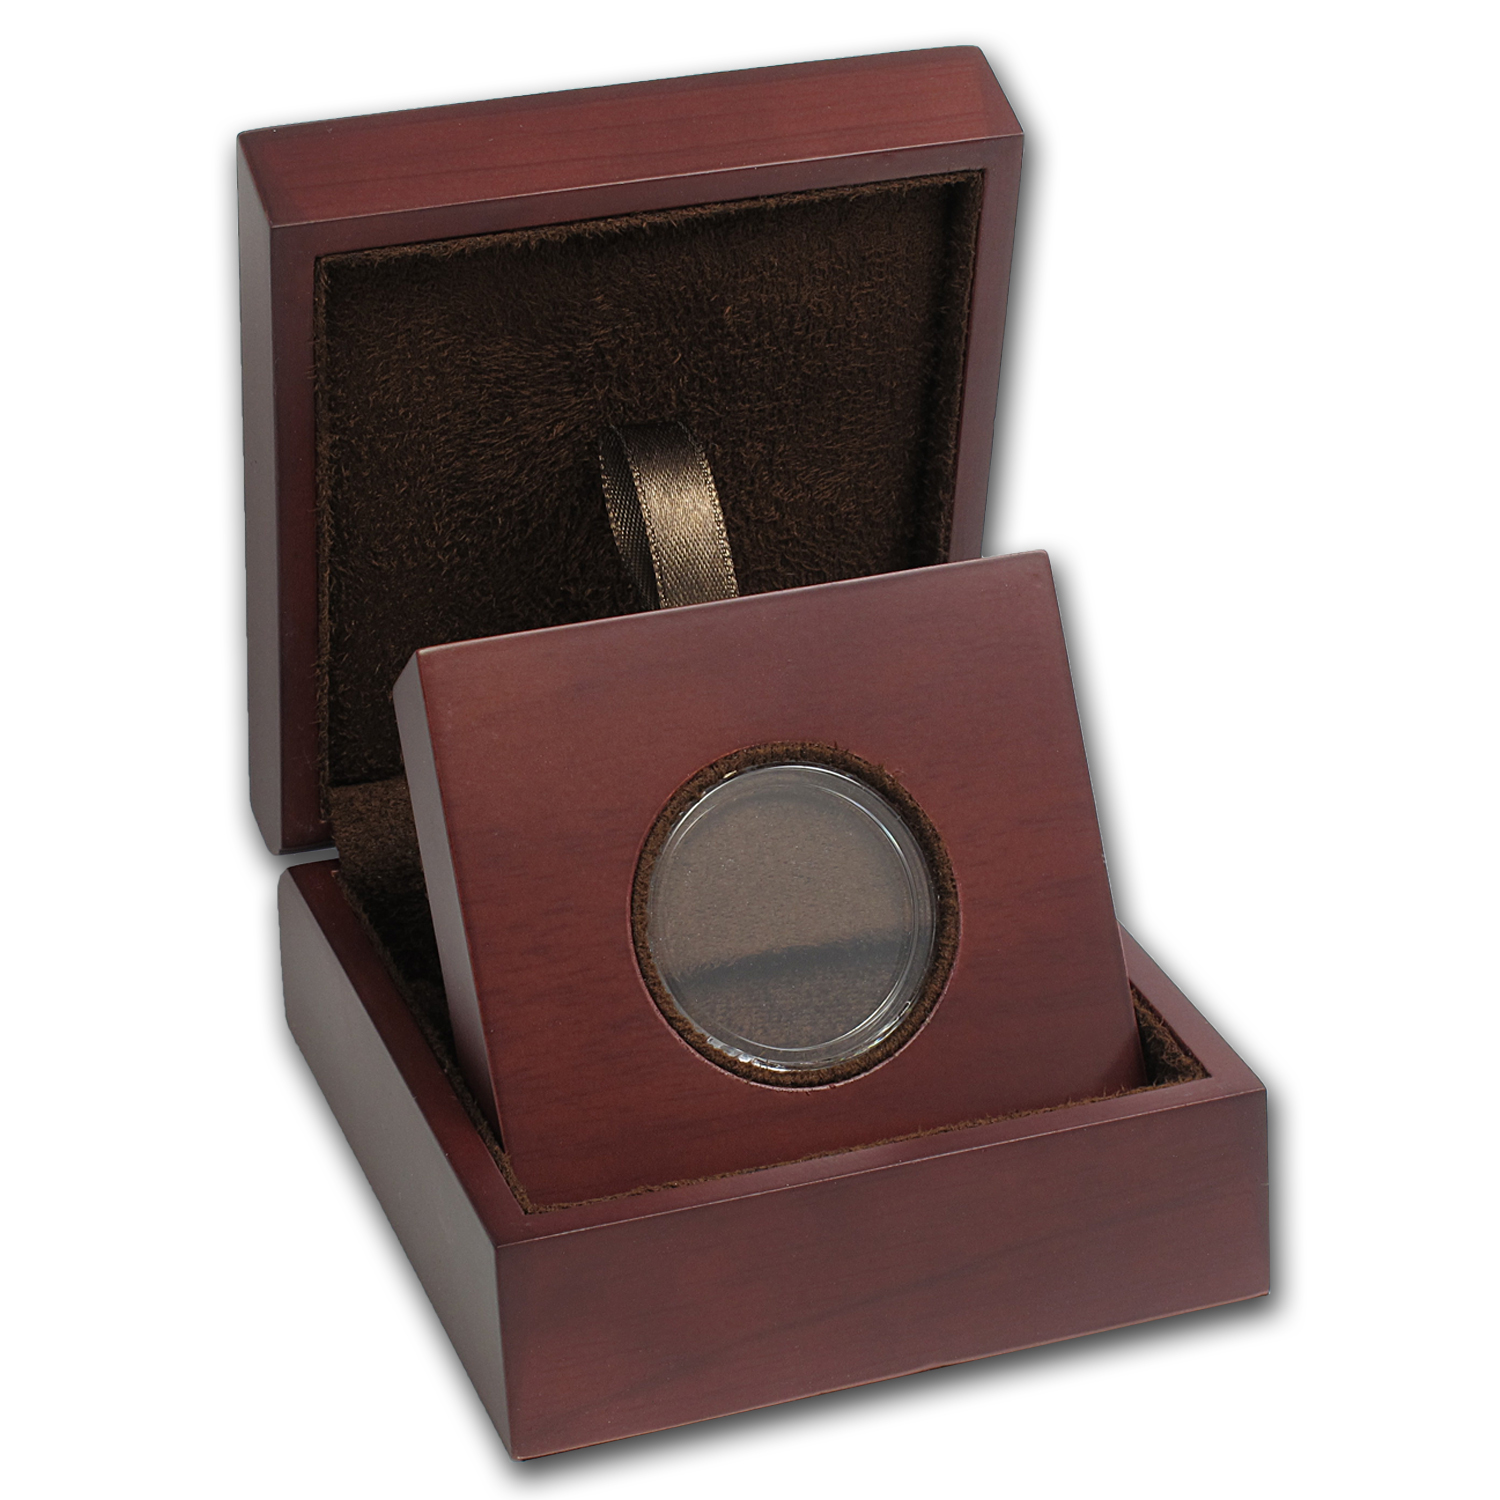 APMEX Wood Gift Box - Includes 30.6 mm Direct Fit Air-Tite Holder